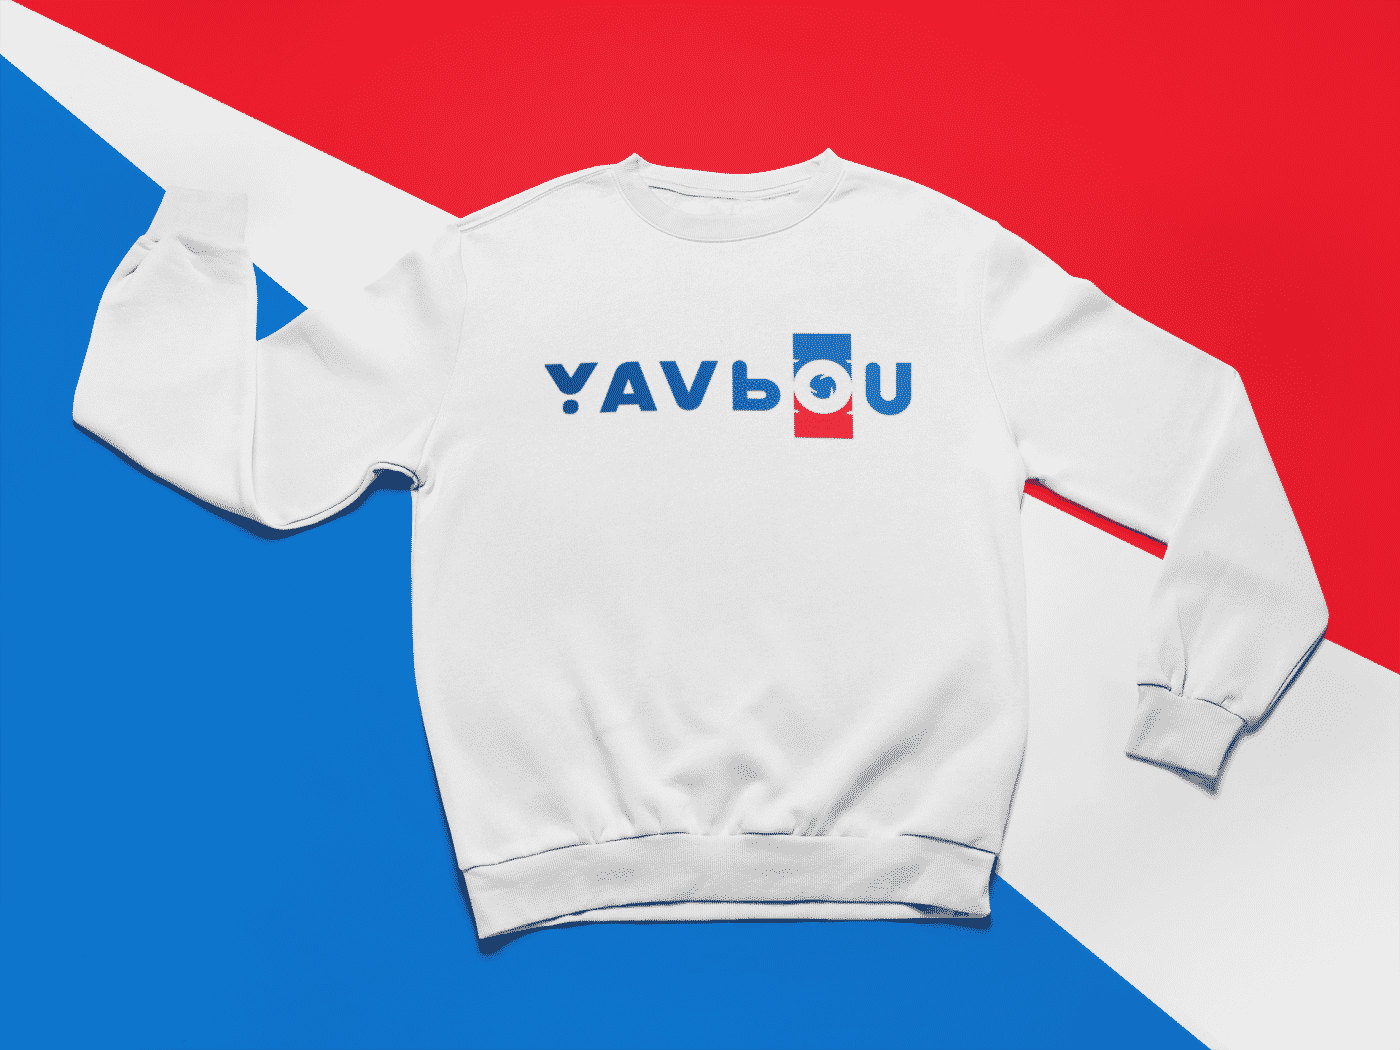 nouvelle-collection-team-yavbou-2019-sportisgood-direct-volley-volleypack-5